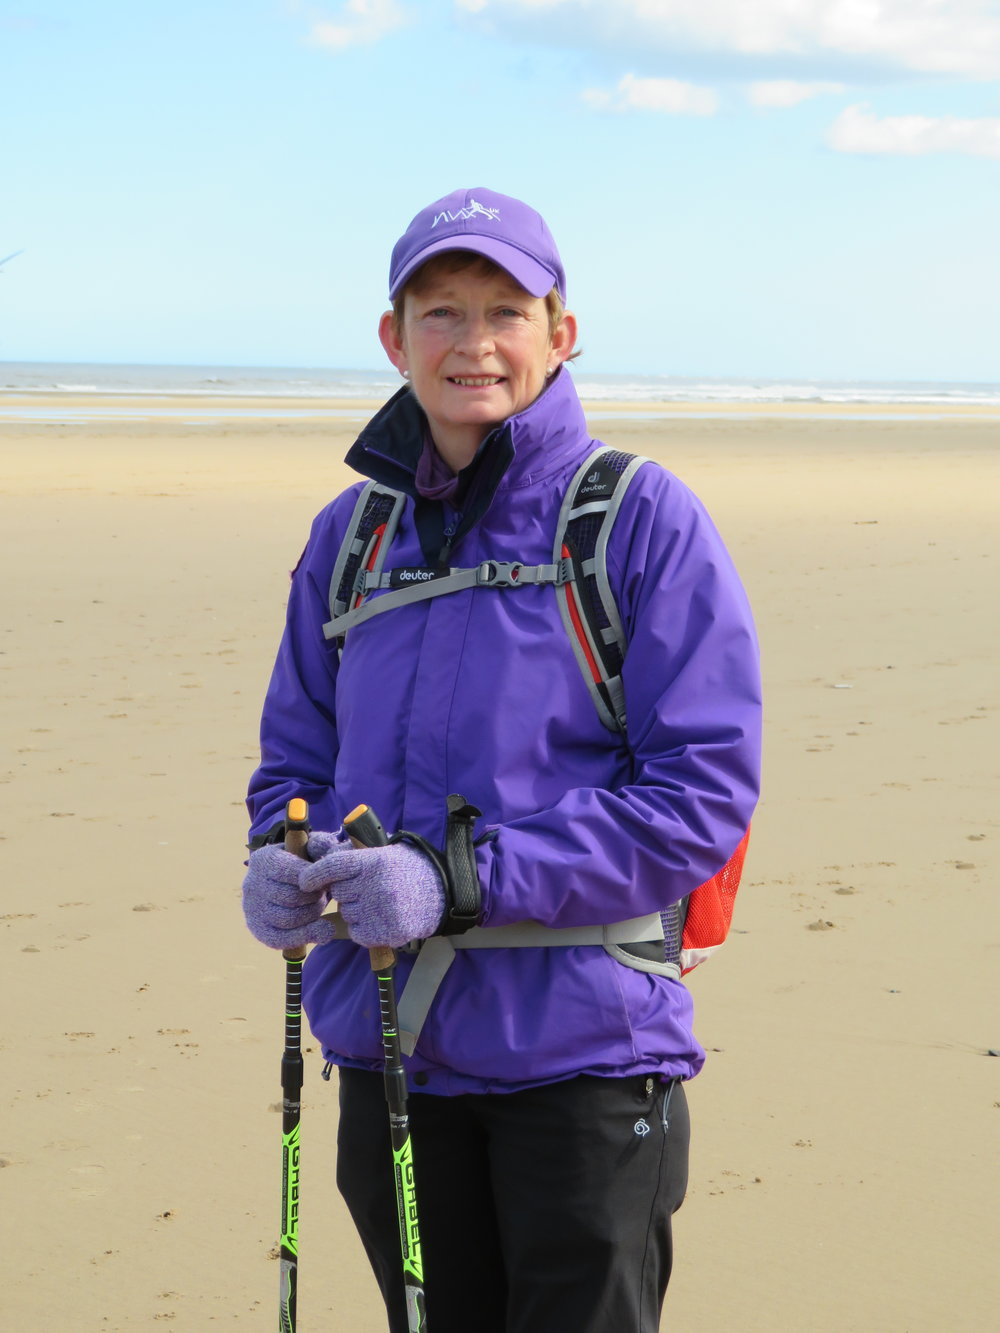 Pat is dressed in dark purple jacket and purple cap, tightly holding Nordic walking poles to her on a large sandy beach with tide in the distance with a light blue sky.